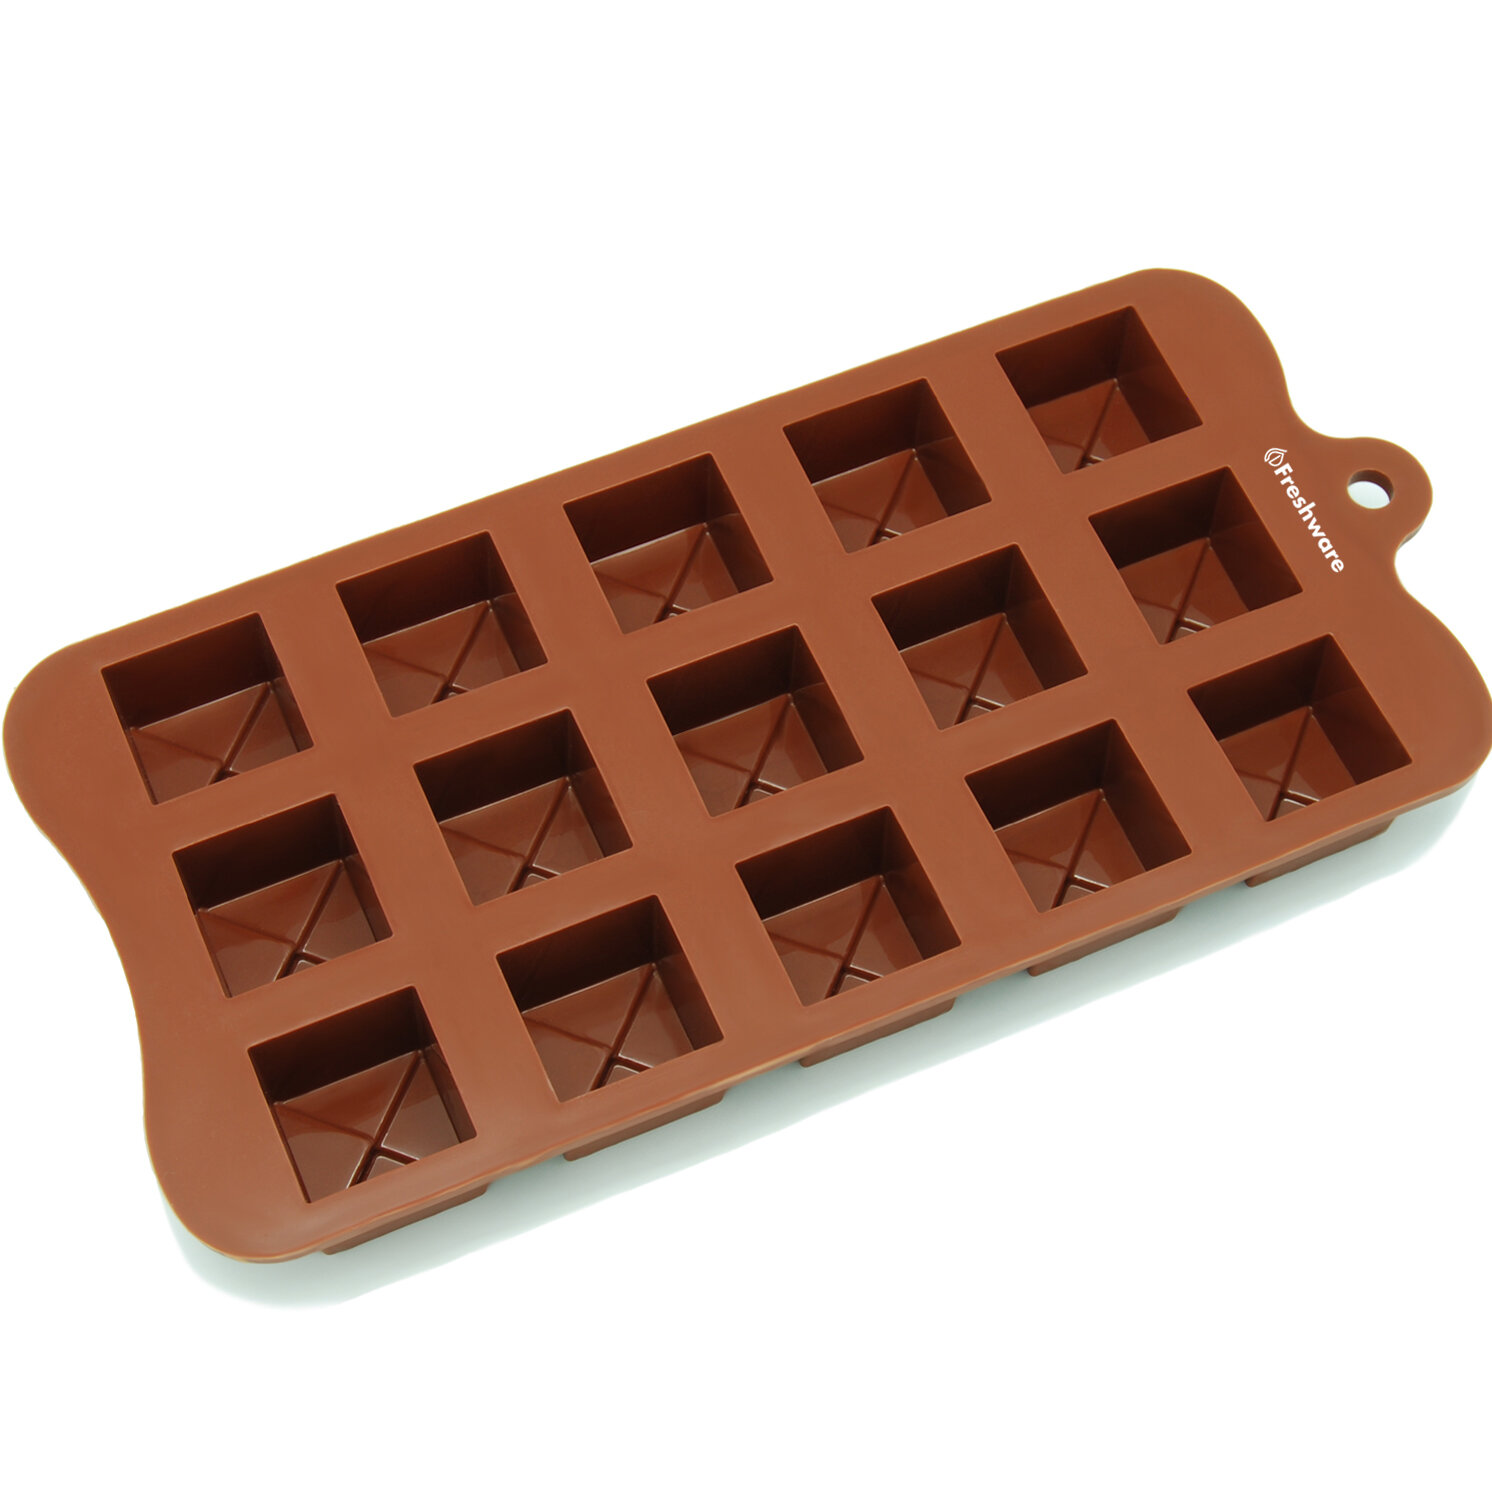 Freshware 15 Cavity Tiered Square Silicone Mold Pan Wayfair